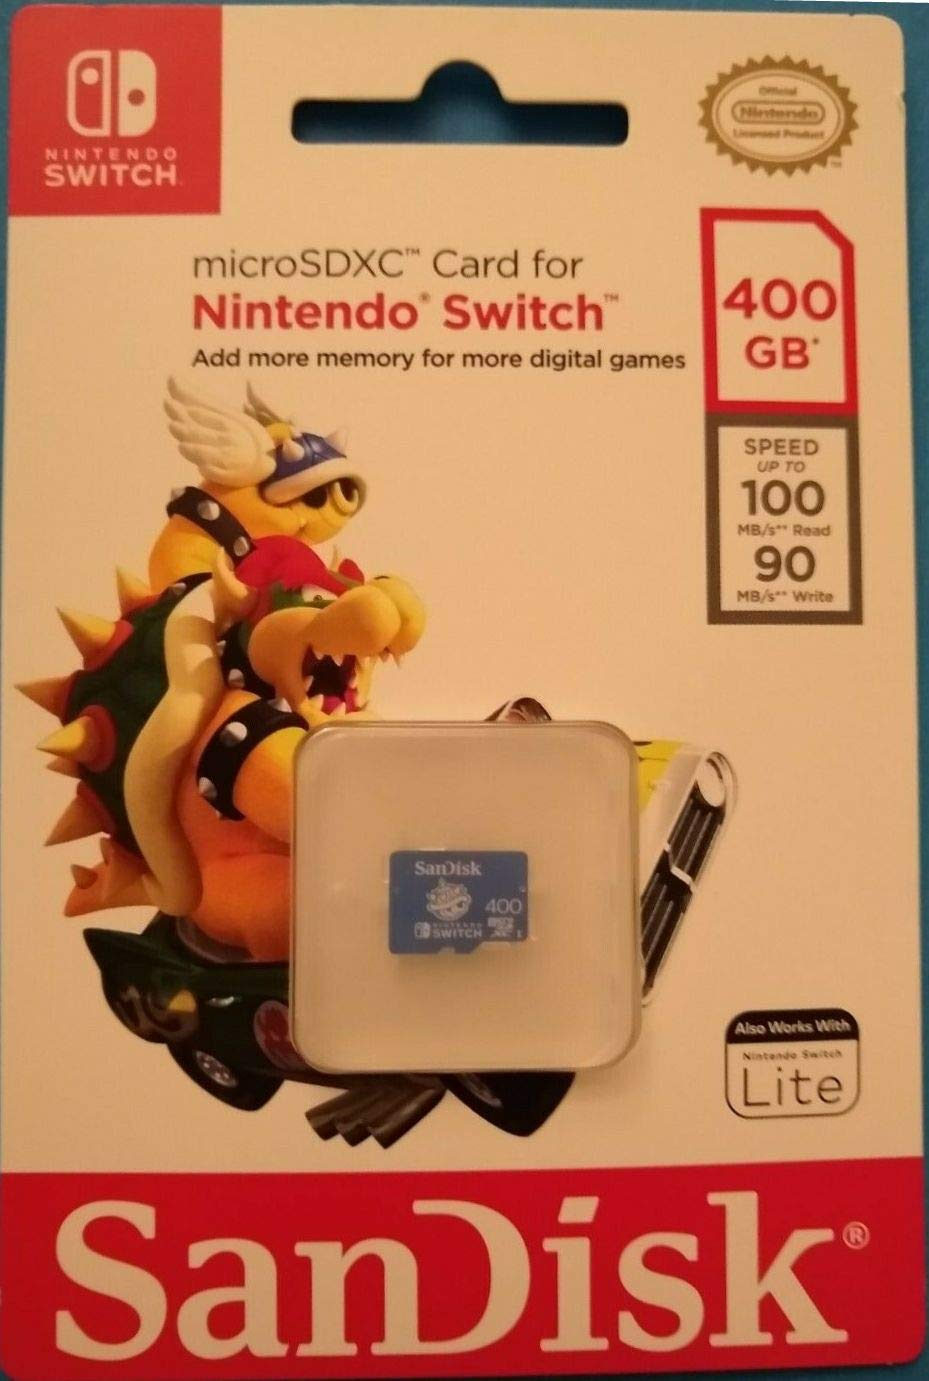 SanDisk - 400GB microSDXC UHS-I for Nintendo Switch